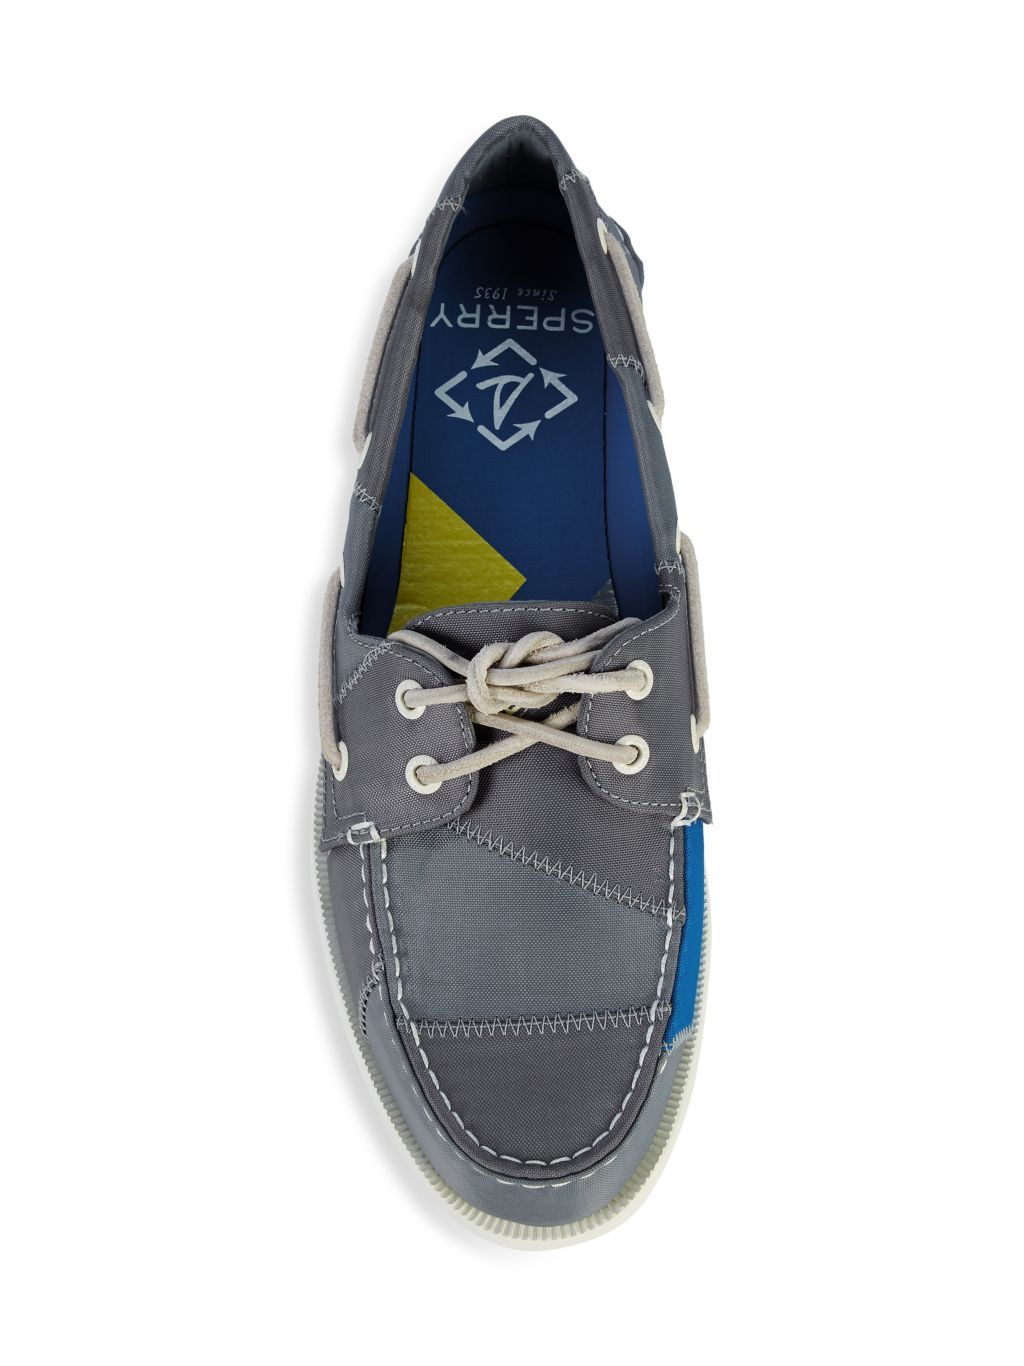 Sperry Bioni Patchwork Boat Shoe Loafers